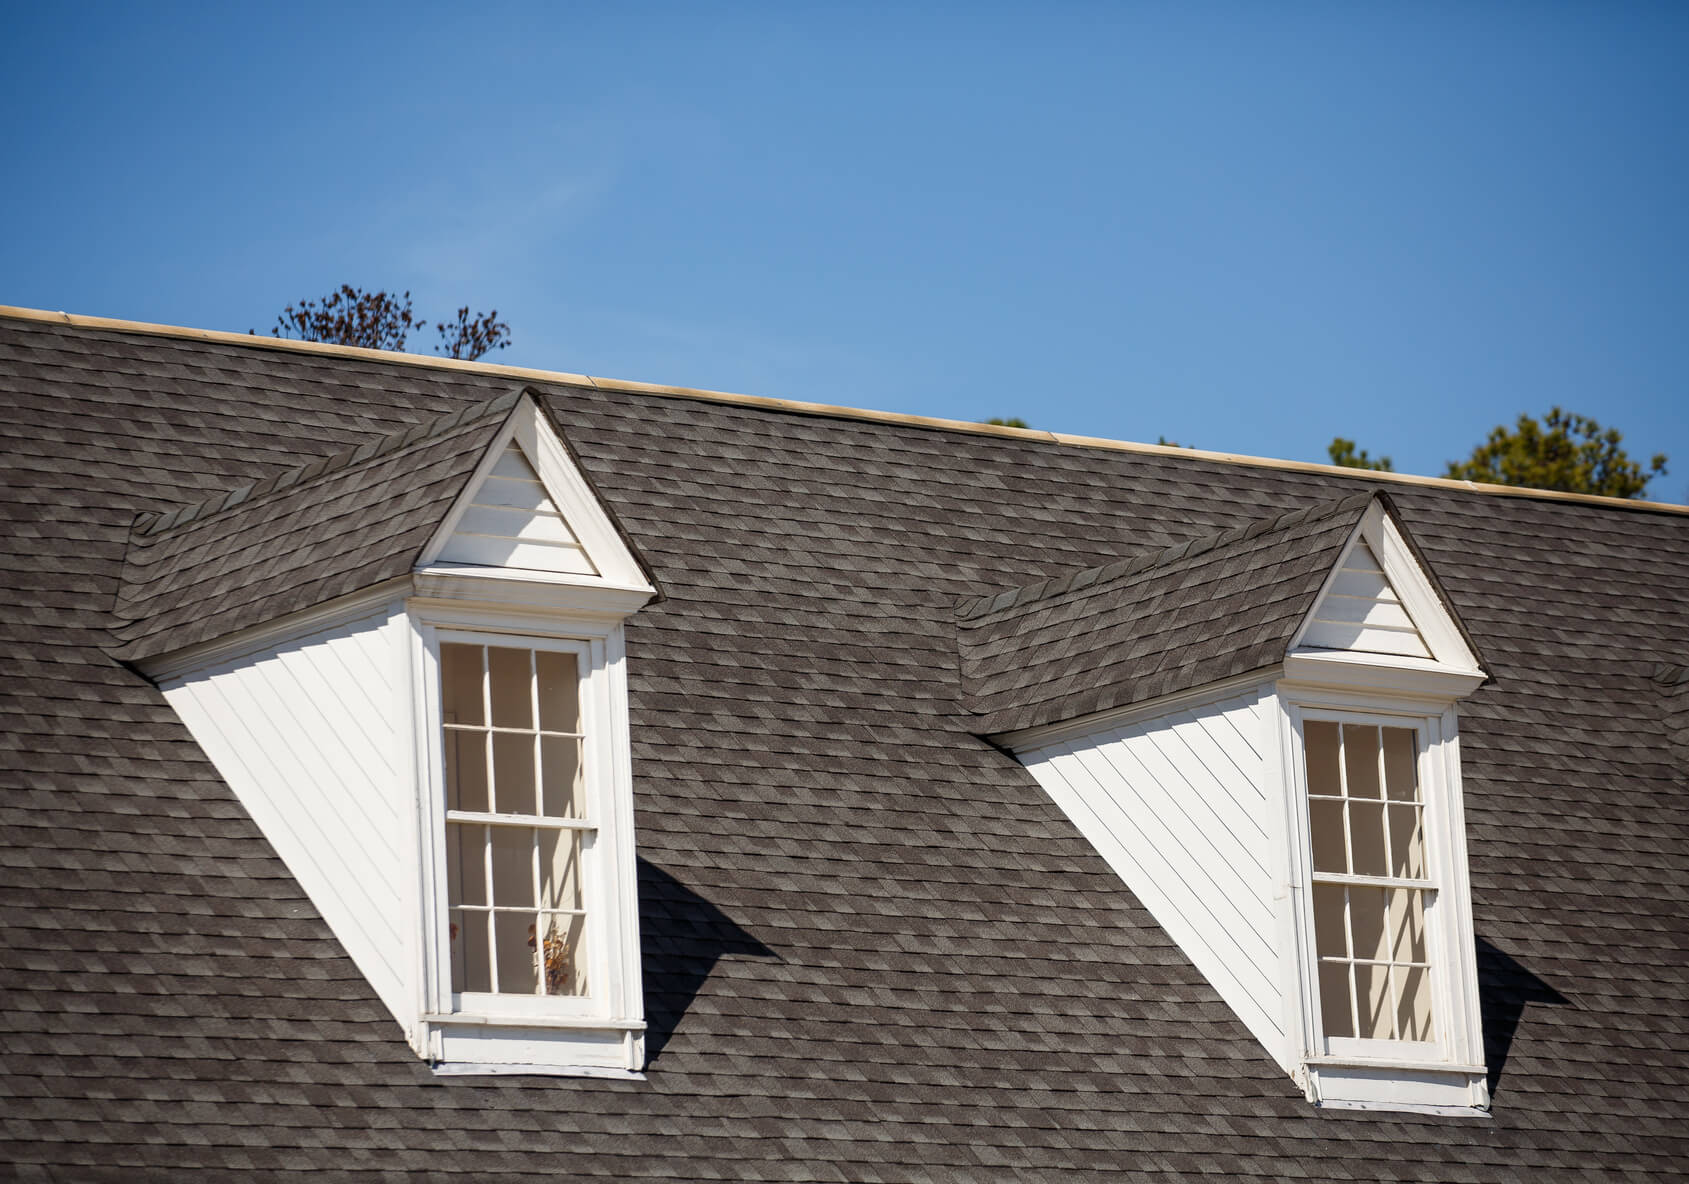 Roofing Material: Are asphalt shingles right for my house?